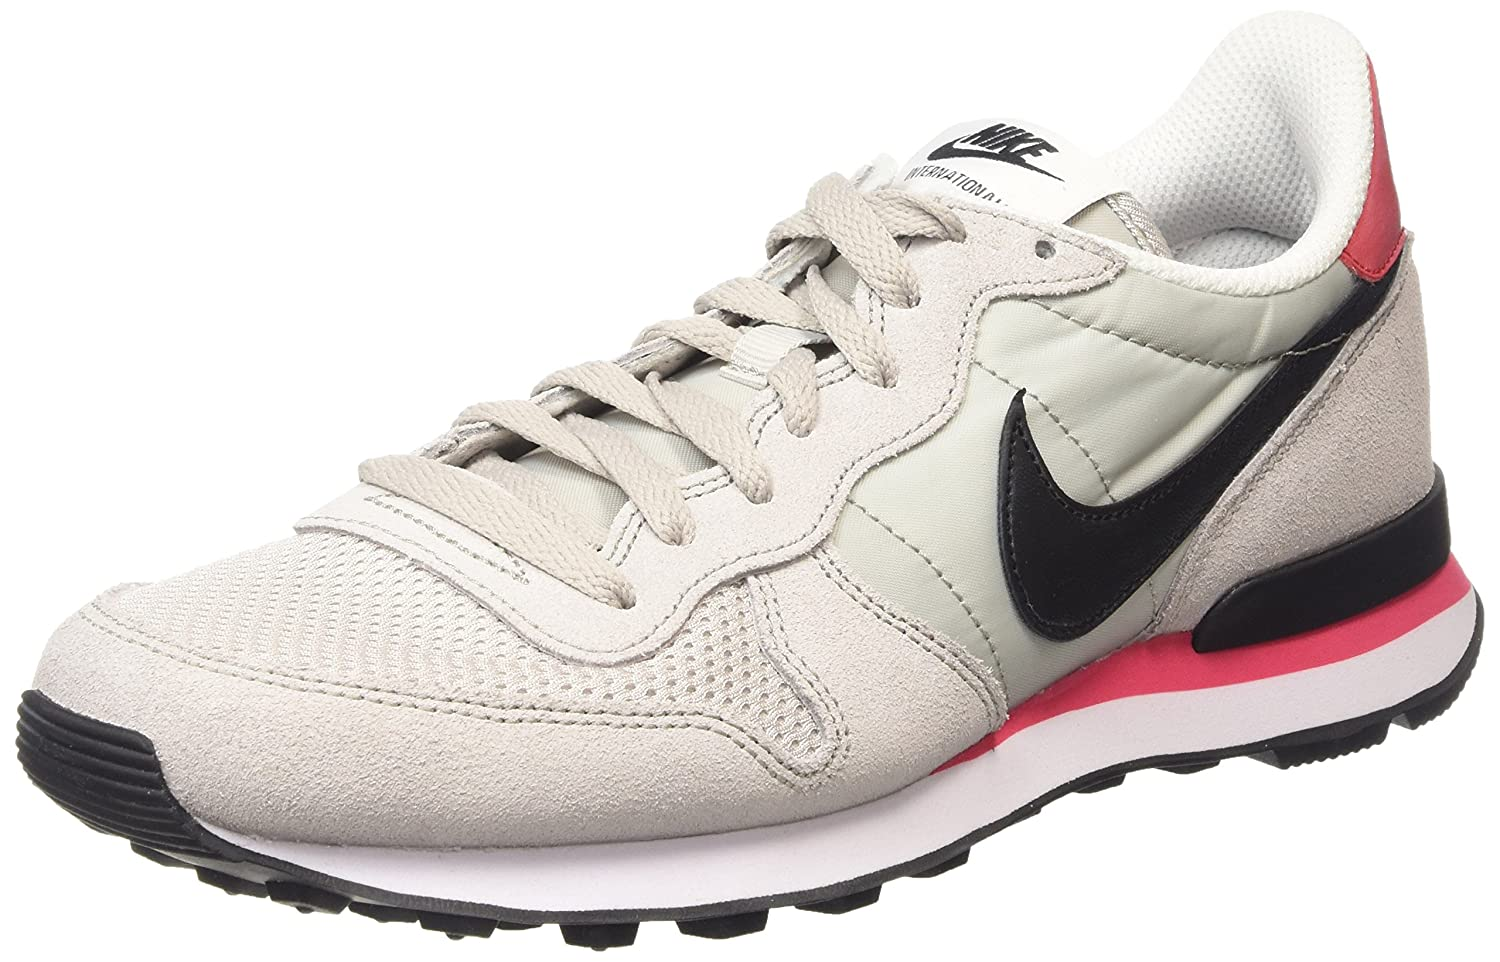 new product 2043b 6ce27 Nike Internationalist Schuhe neutral grey-black-infrared-white - 43   Amazon.co.uk  Shoes   Bags